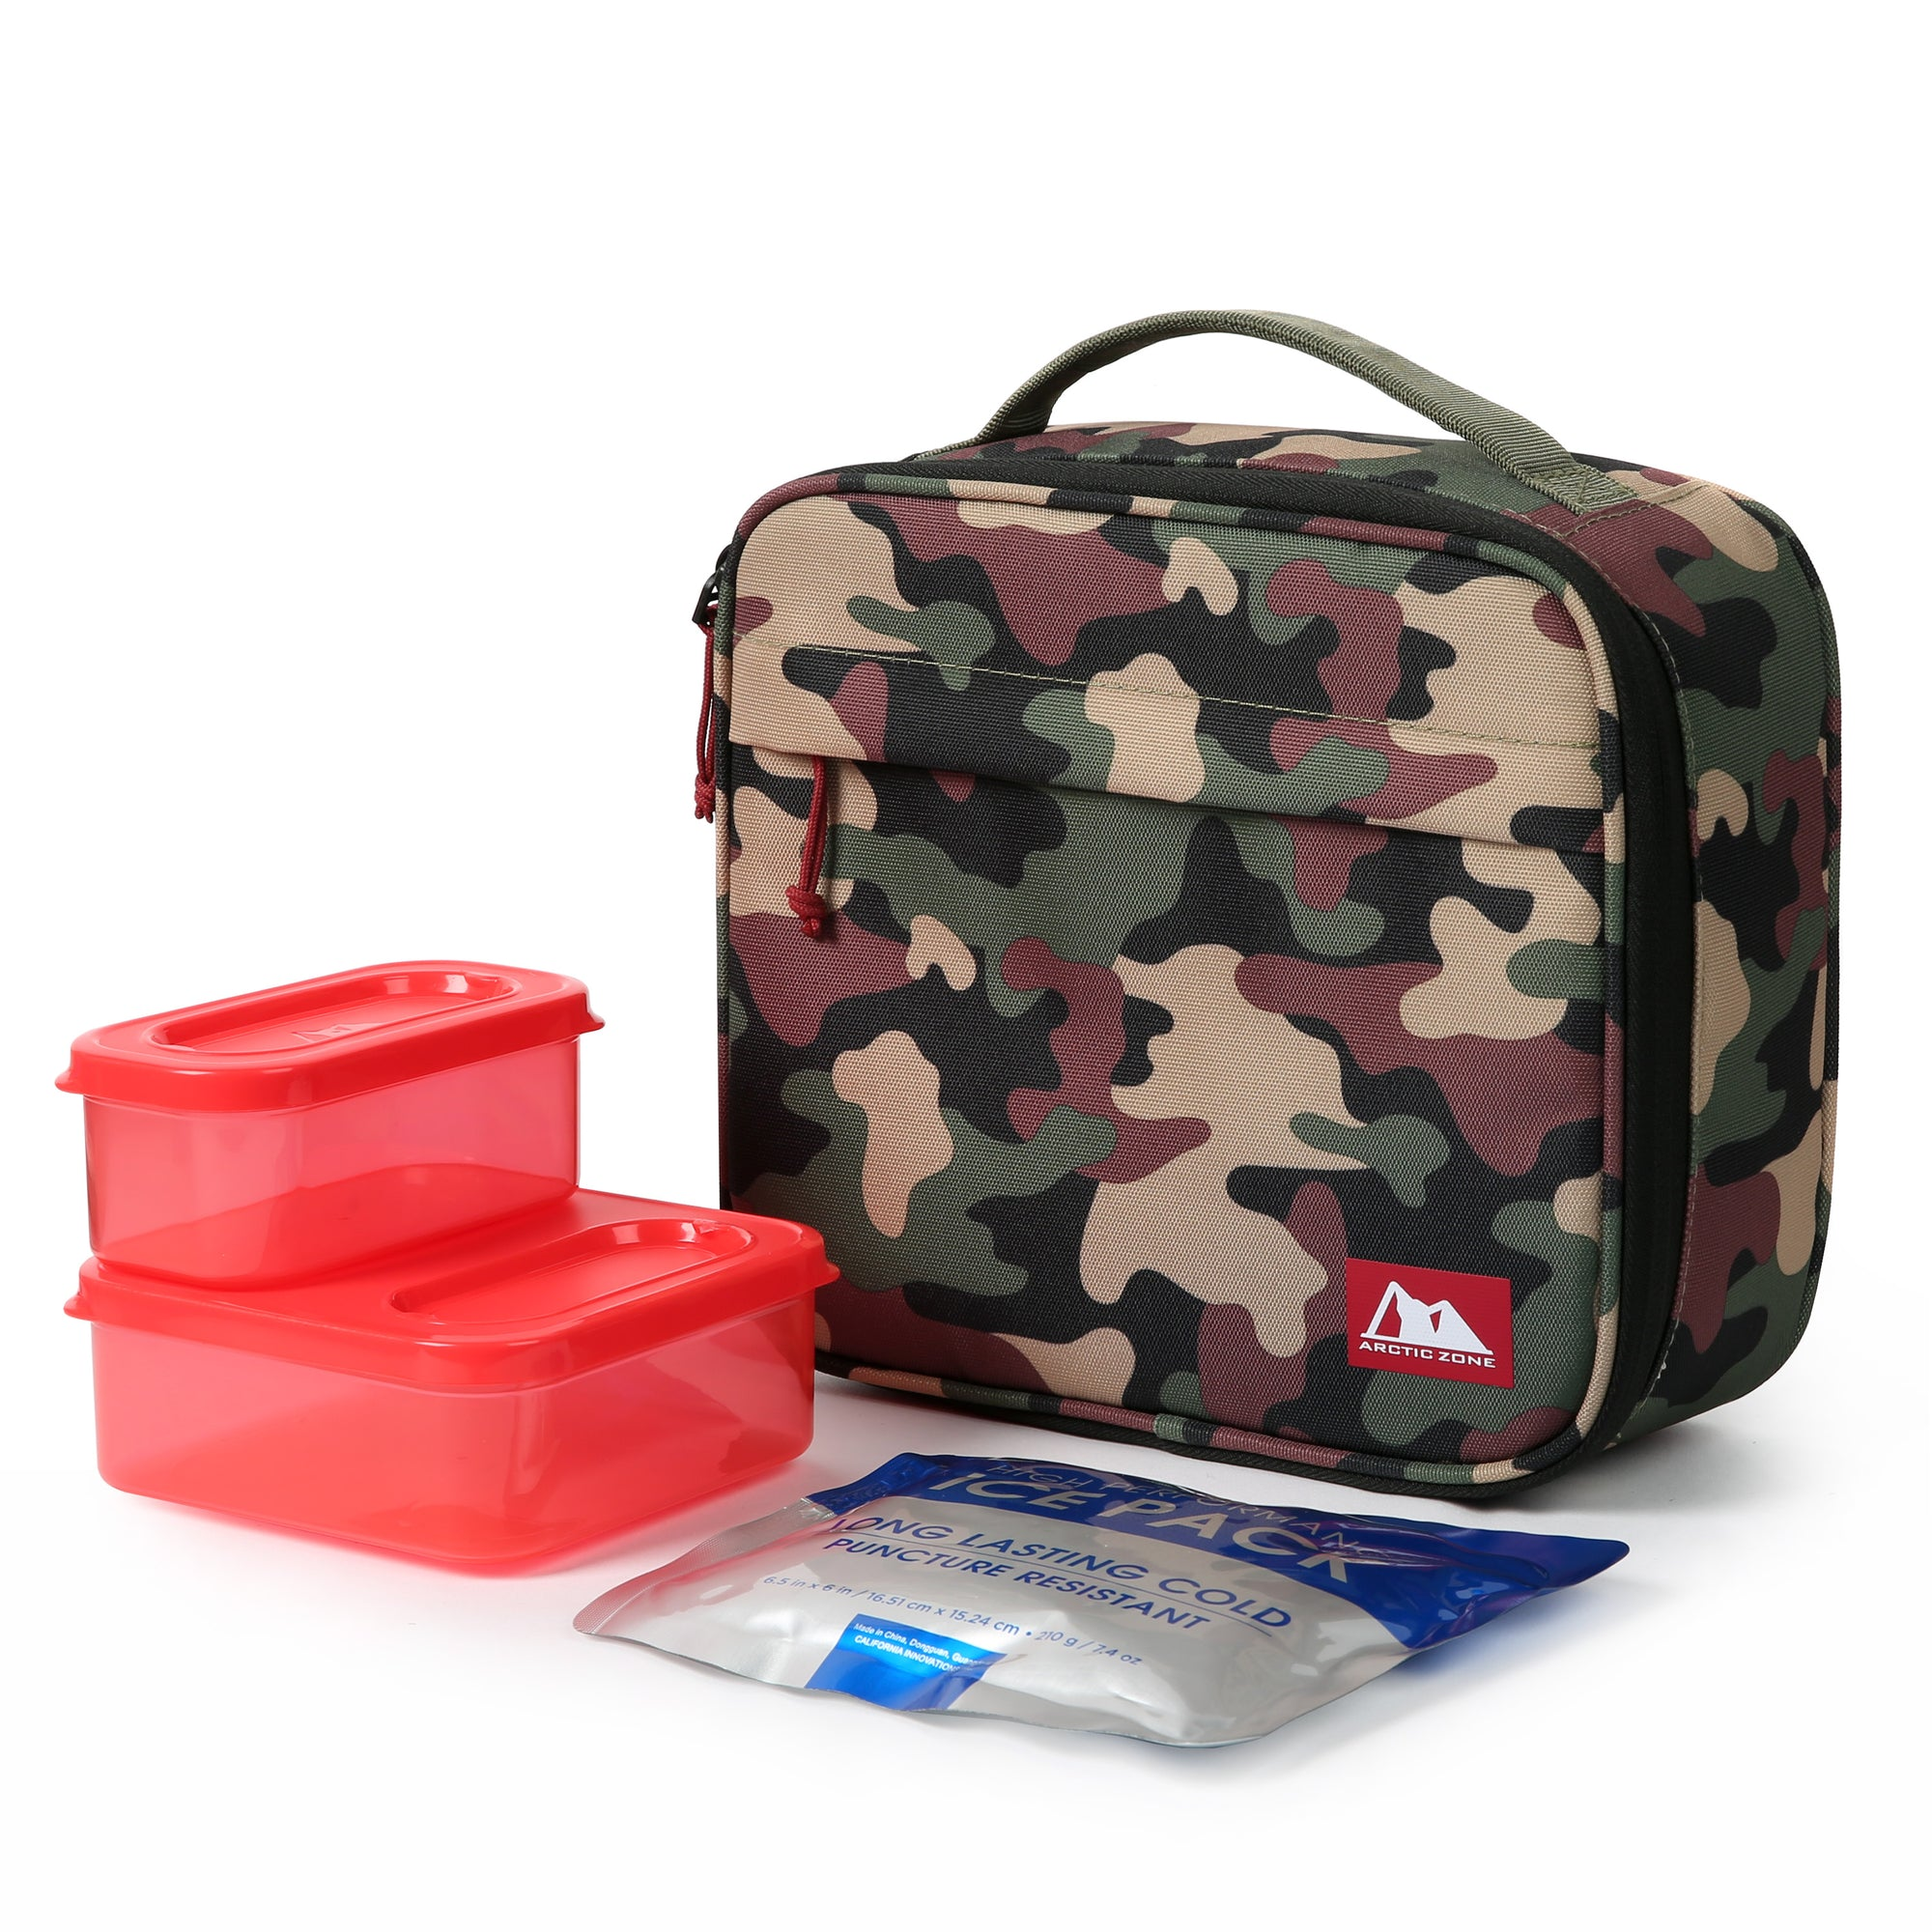 Kids Classics Lunch Box with 210gm Ice pack & 4 Piece Container Set - Camo